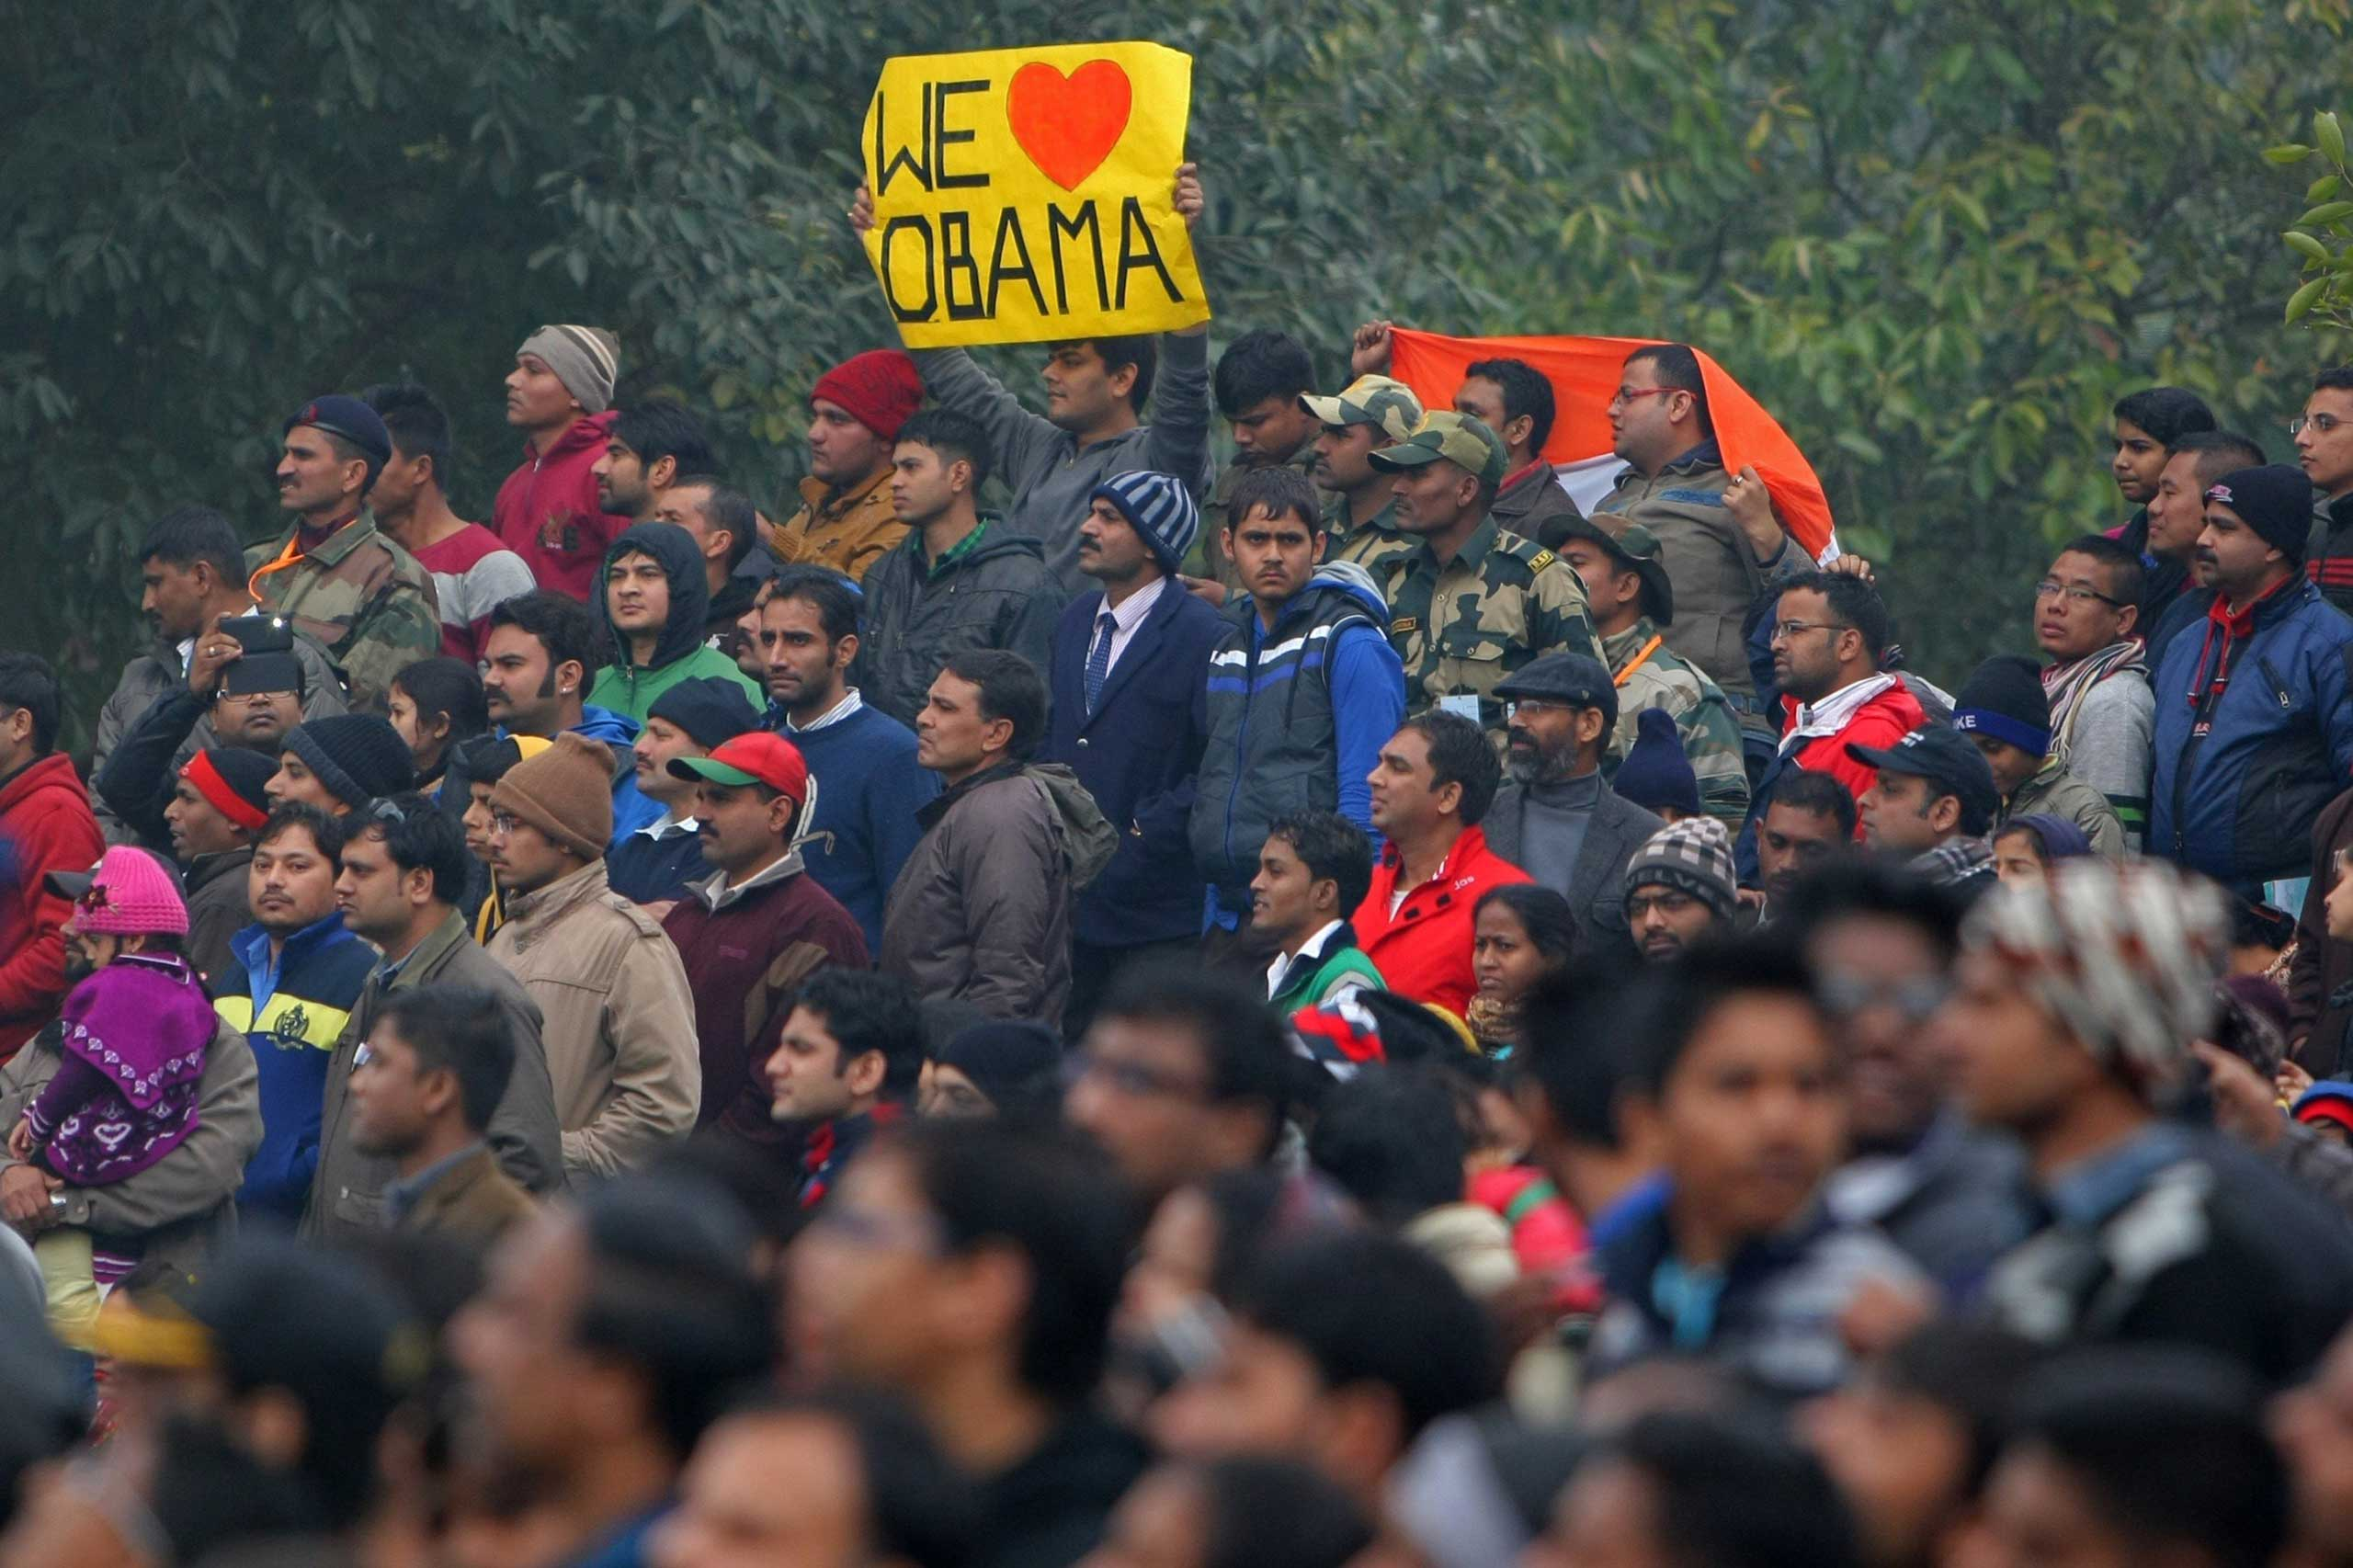 """A spectator holds a placard that reads """"We Love Obama"""" as the motorcade of President Obama departs following the conclusion of the country's Republic Day Parade in New Delhi on Jan. 26, 2015."""